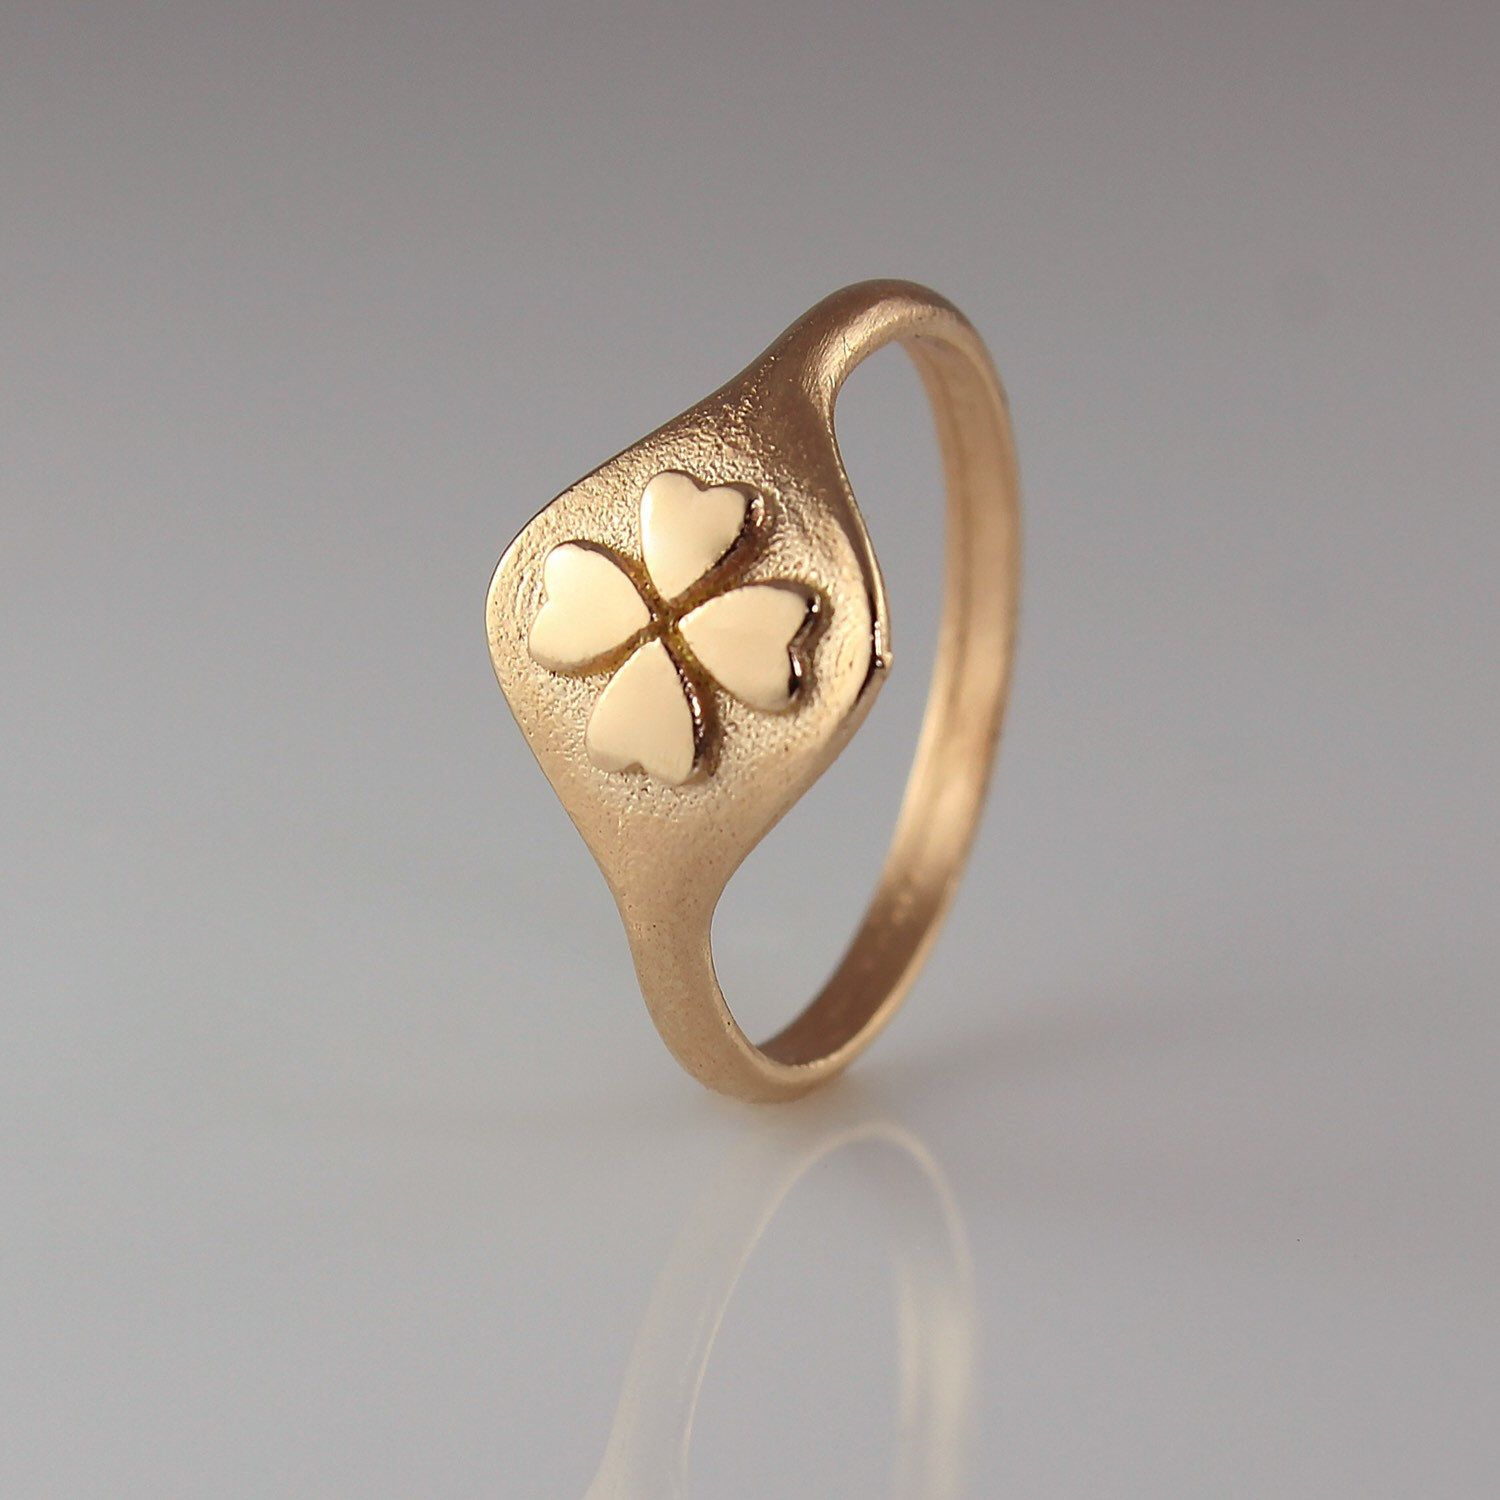 Ring For Women, Signet Ring, Rose Gold Signet Ring, Seal Ring, Pinky Within Latest Lucky Four Leaf Clover Open Rings (View 23 of 25)